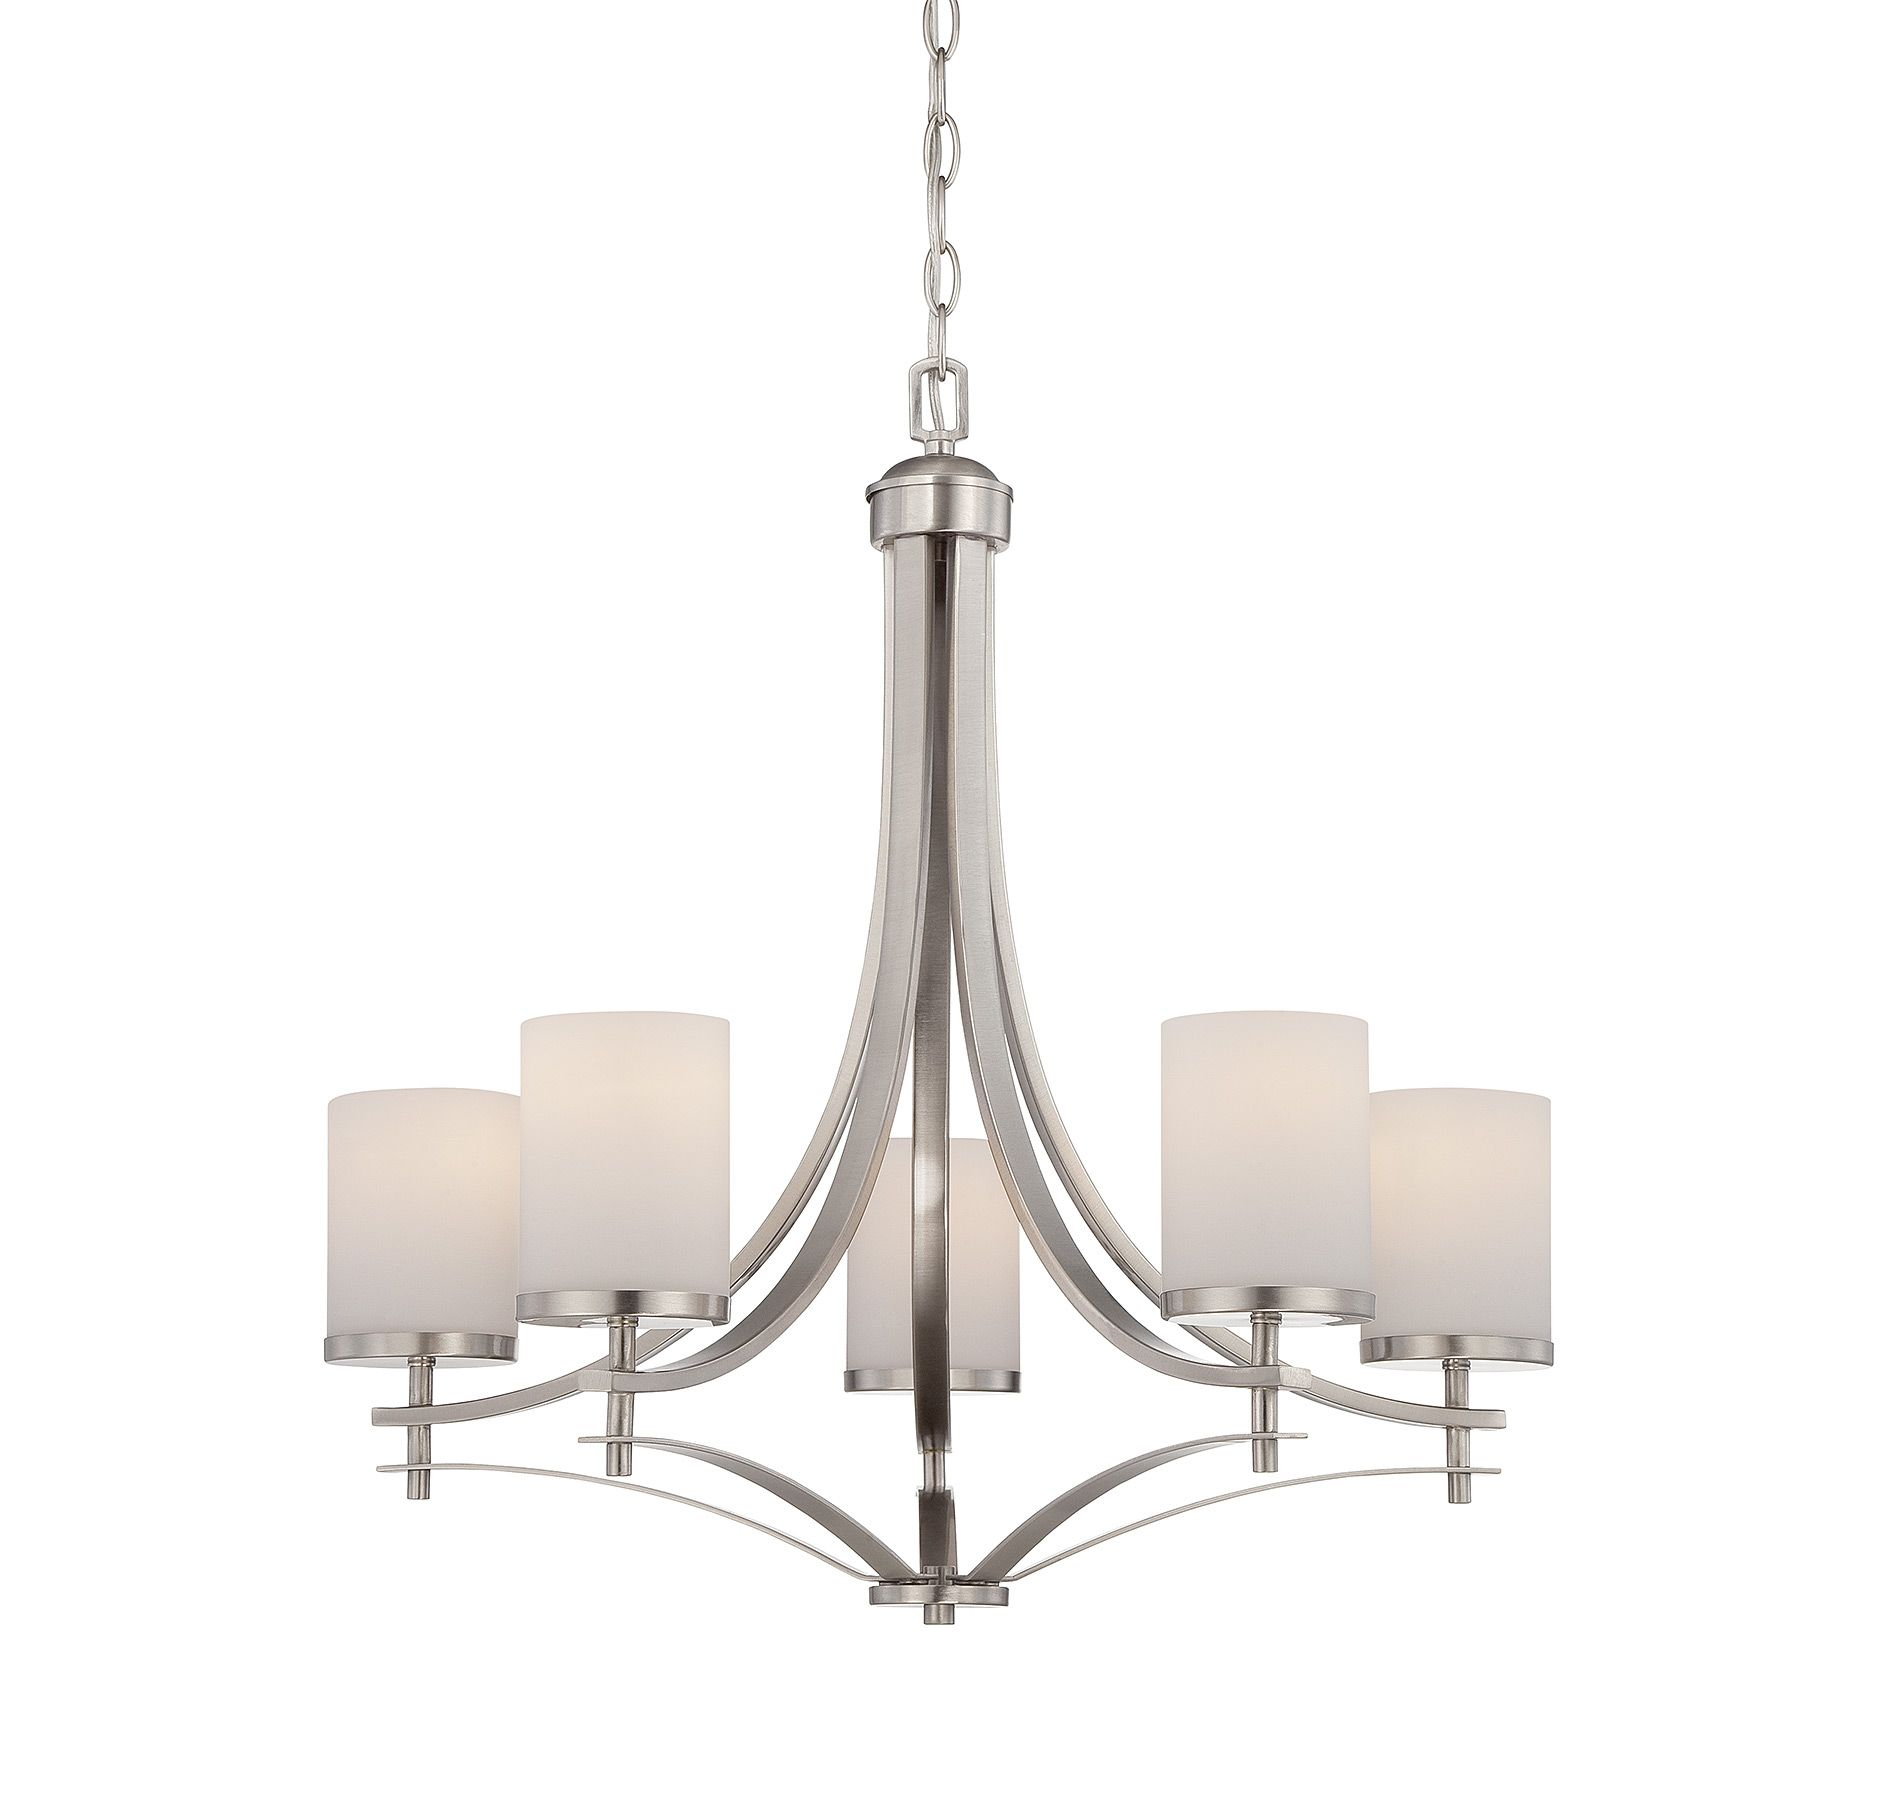 chandeliers fan chandelier lighting house rosendal savoy light click to ceiling enlarge fans